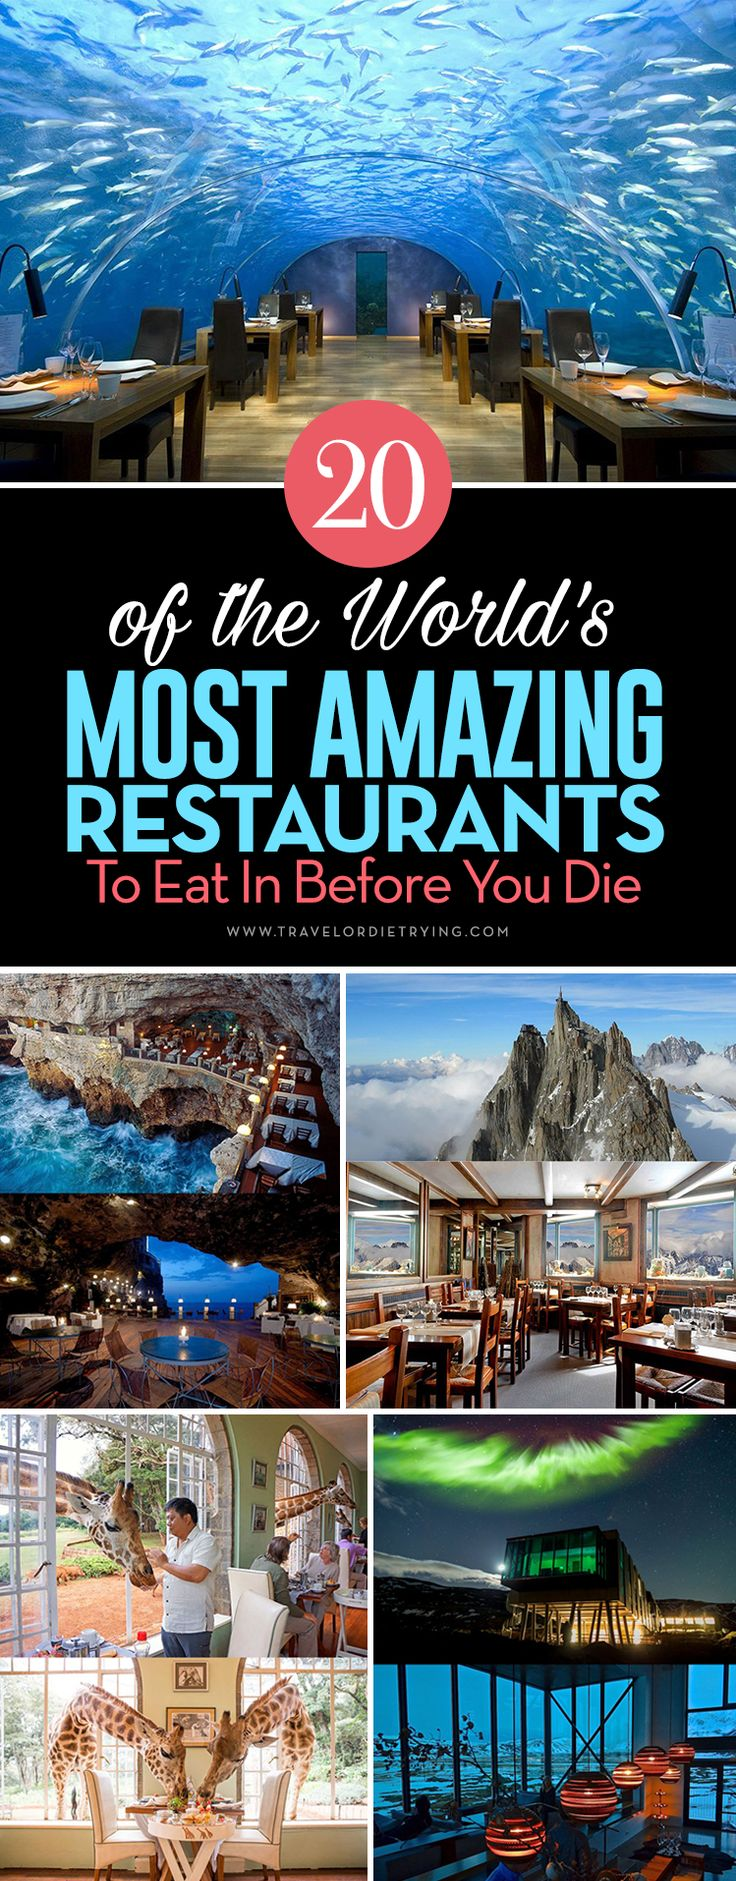 20 Of The World's Most Amazing Restaurants To Eat In Before You Die!